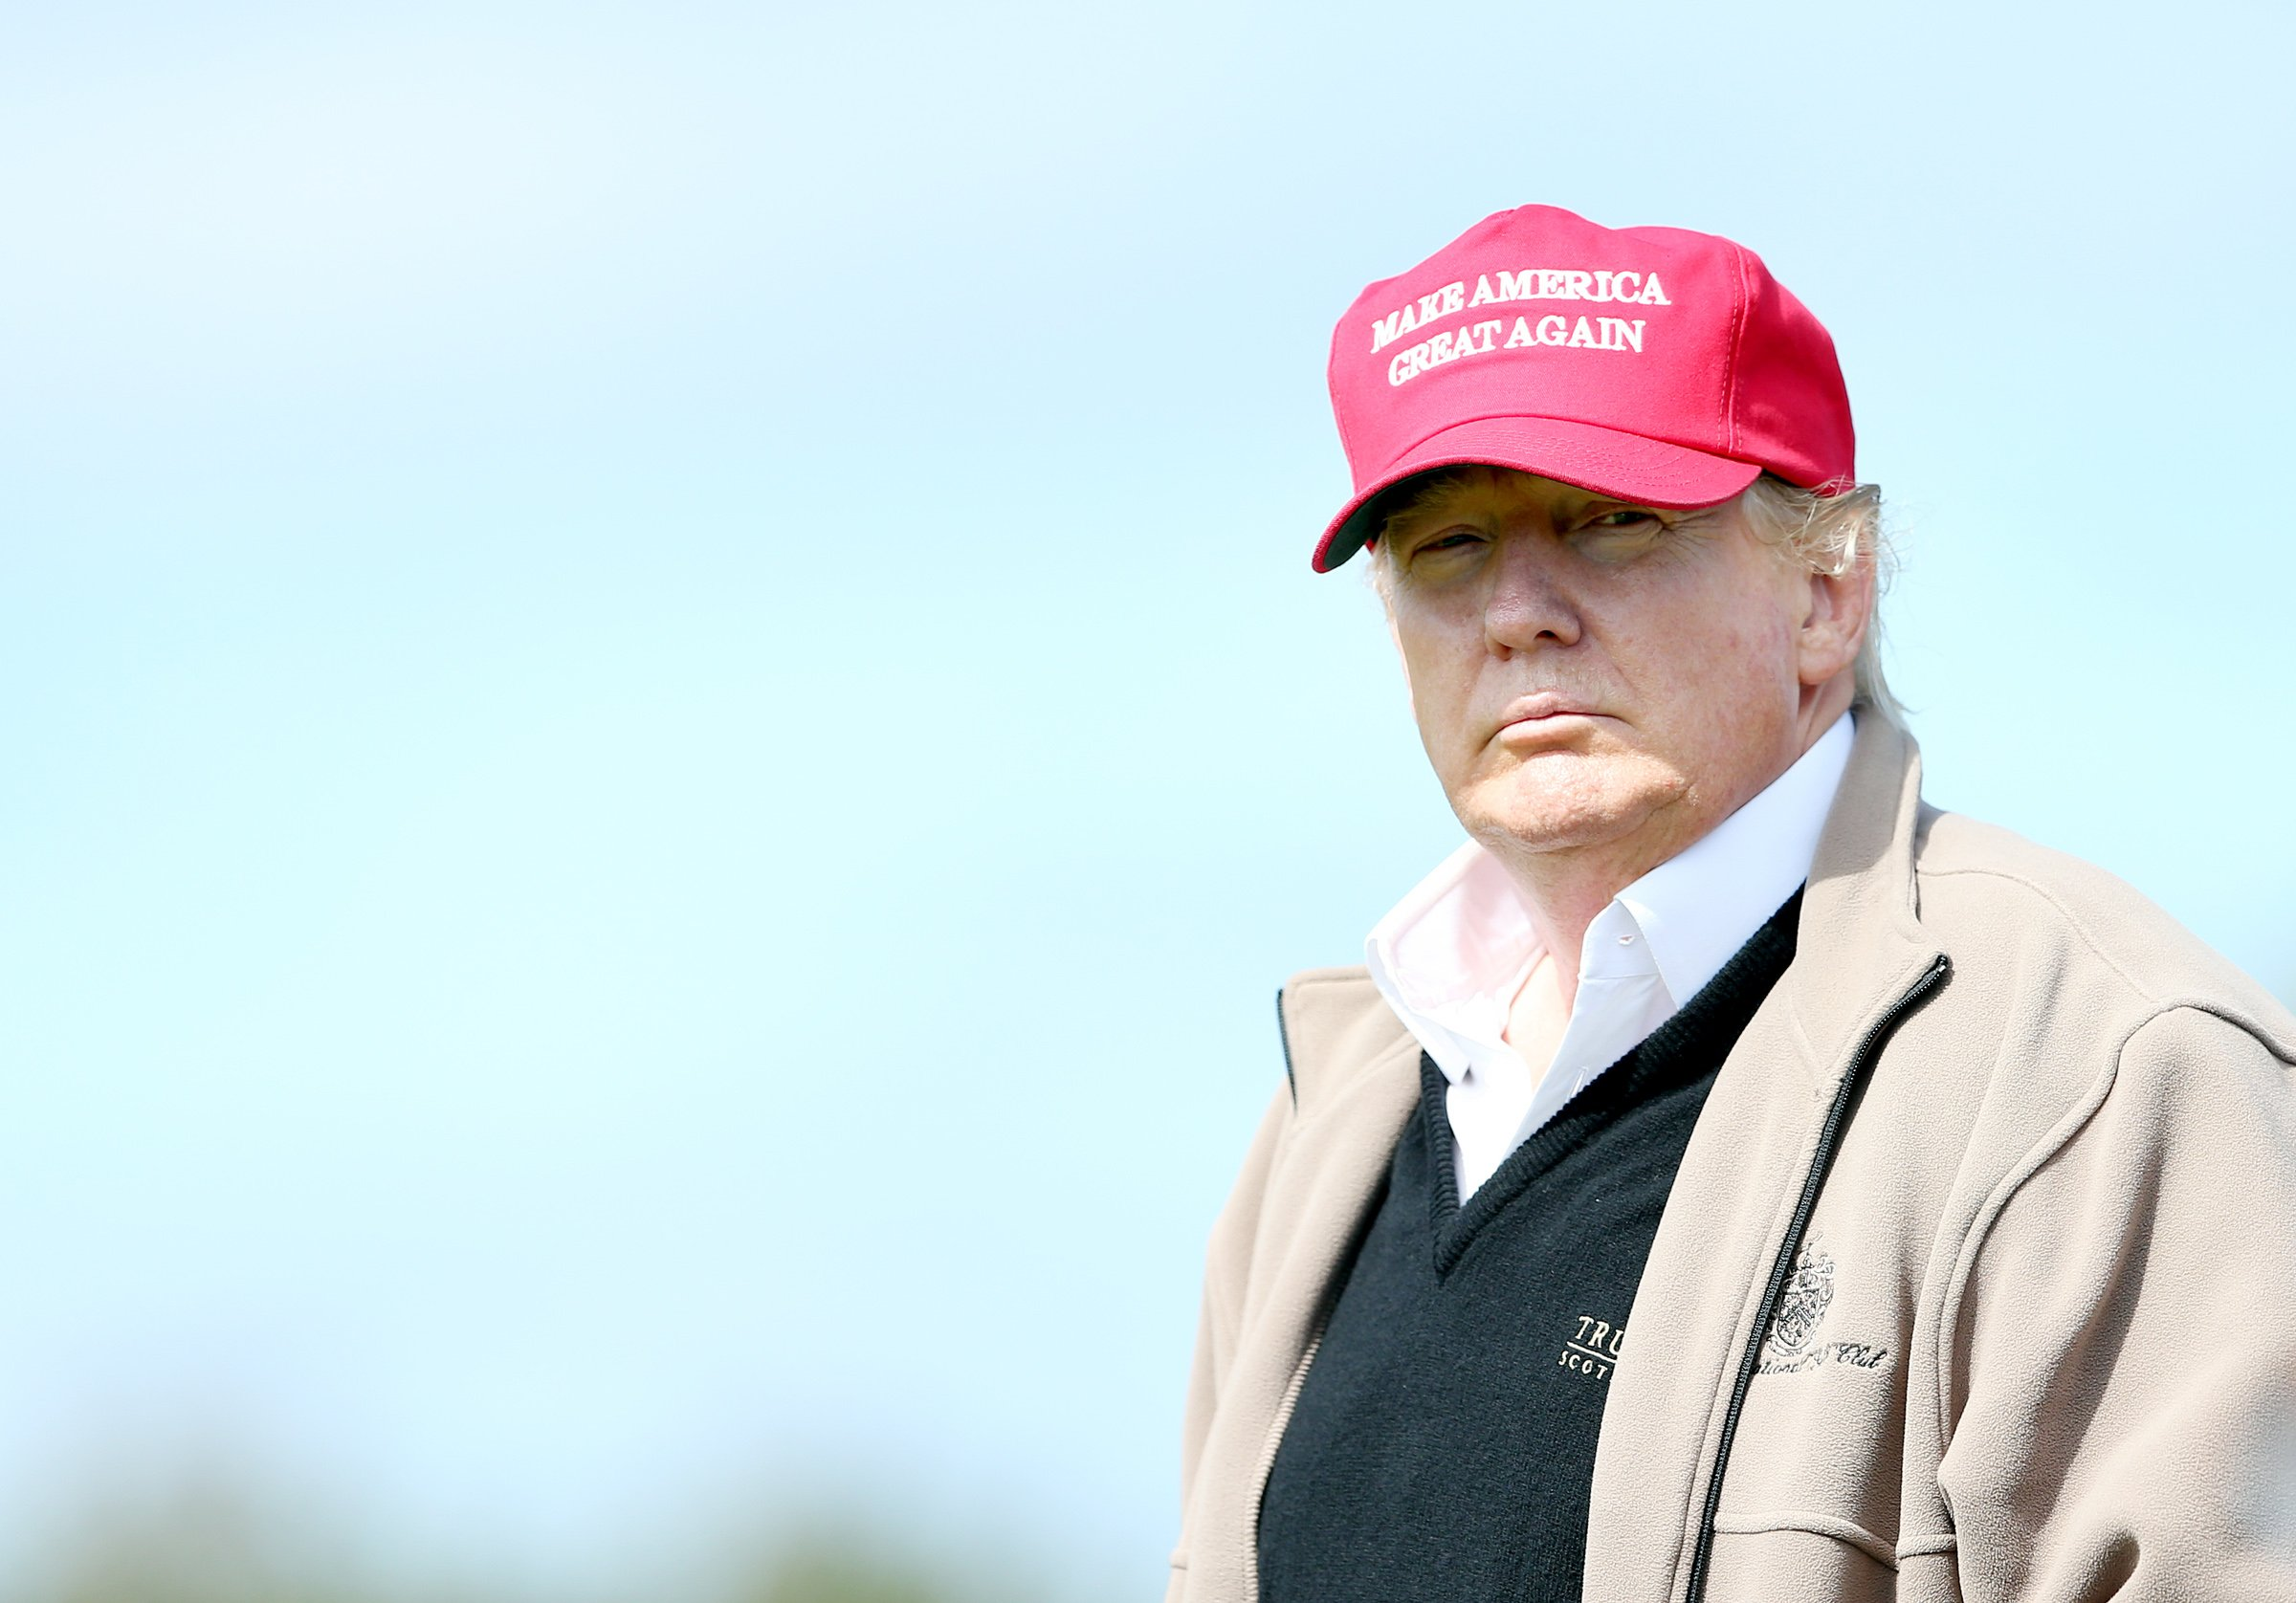 Presidential contender Donald Trump looks on at the 16th green on the 1st first day of the Women's British Open golf championship on the Turnberry golf course in Turnberry, Scotland on July 30, 2015.